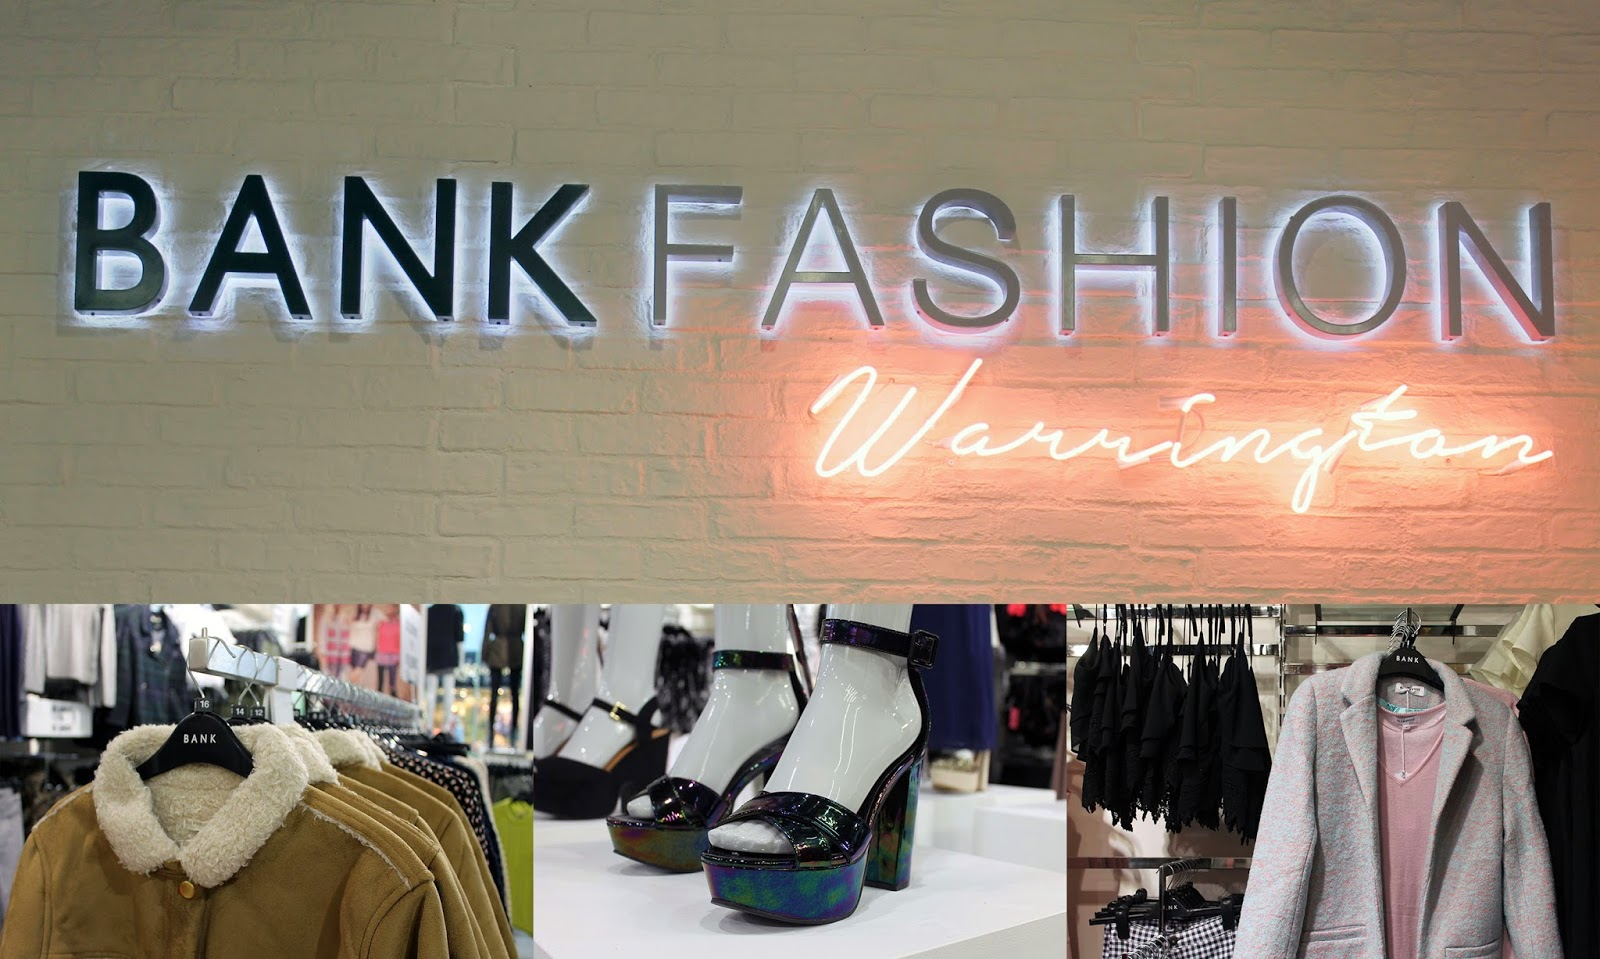 BANK fashion warrington store relaunch #itsagirlthing